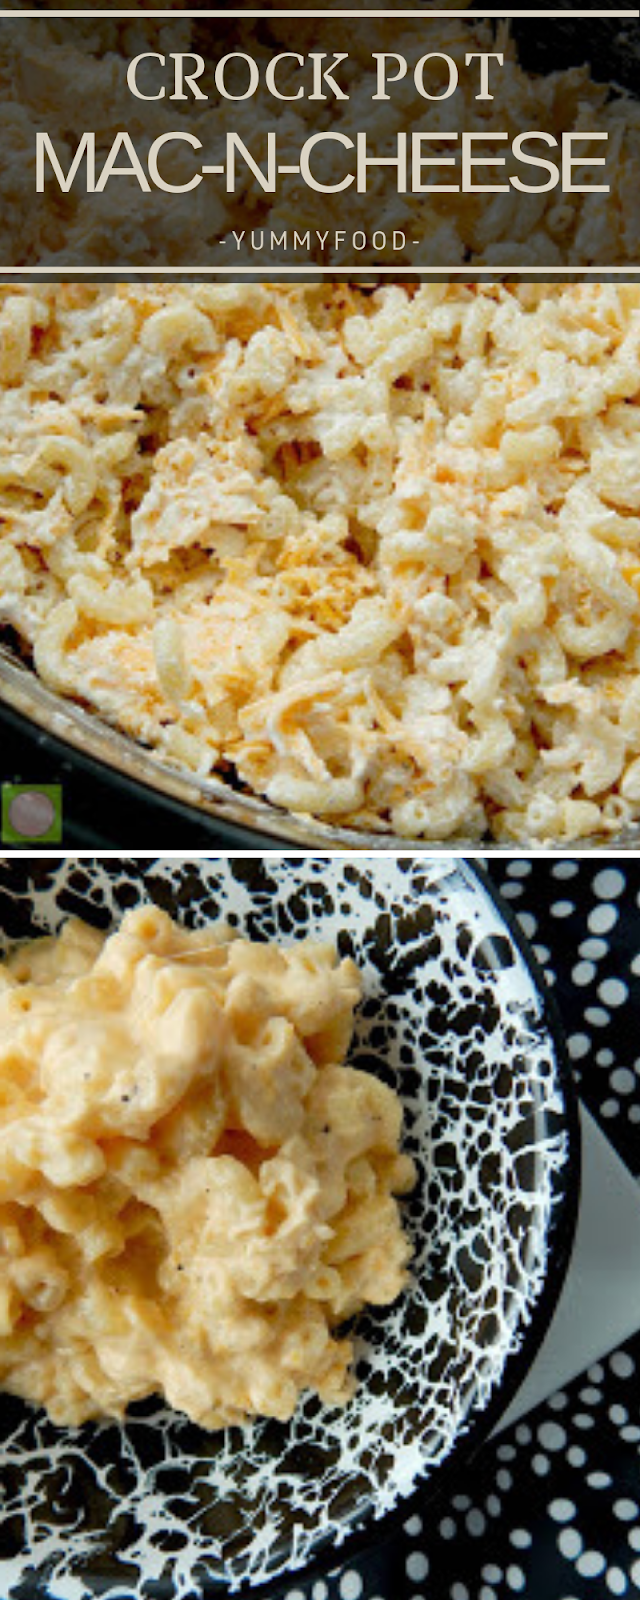 CROCK POT MAC-N-CHEESE